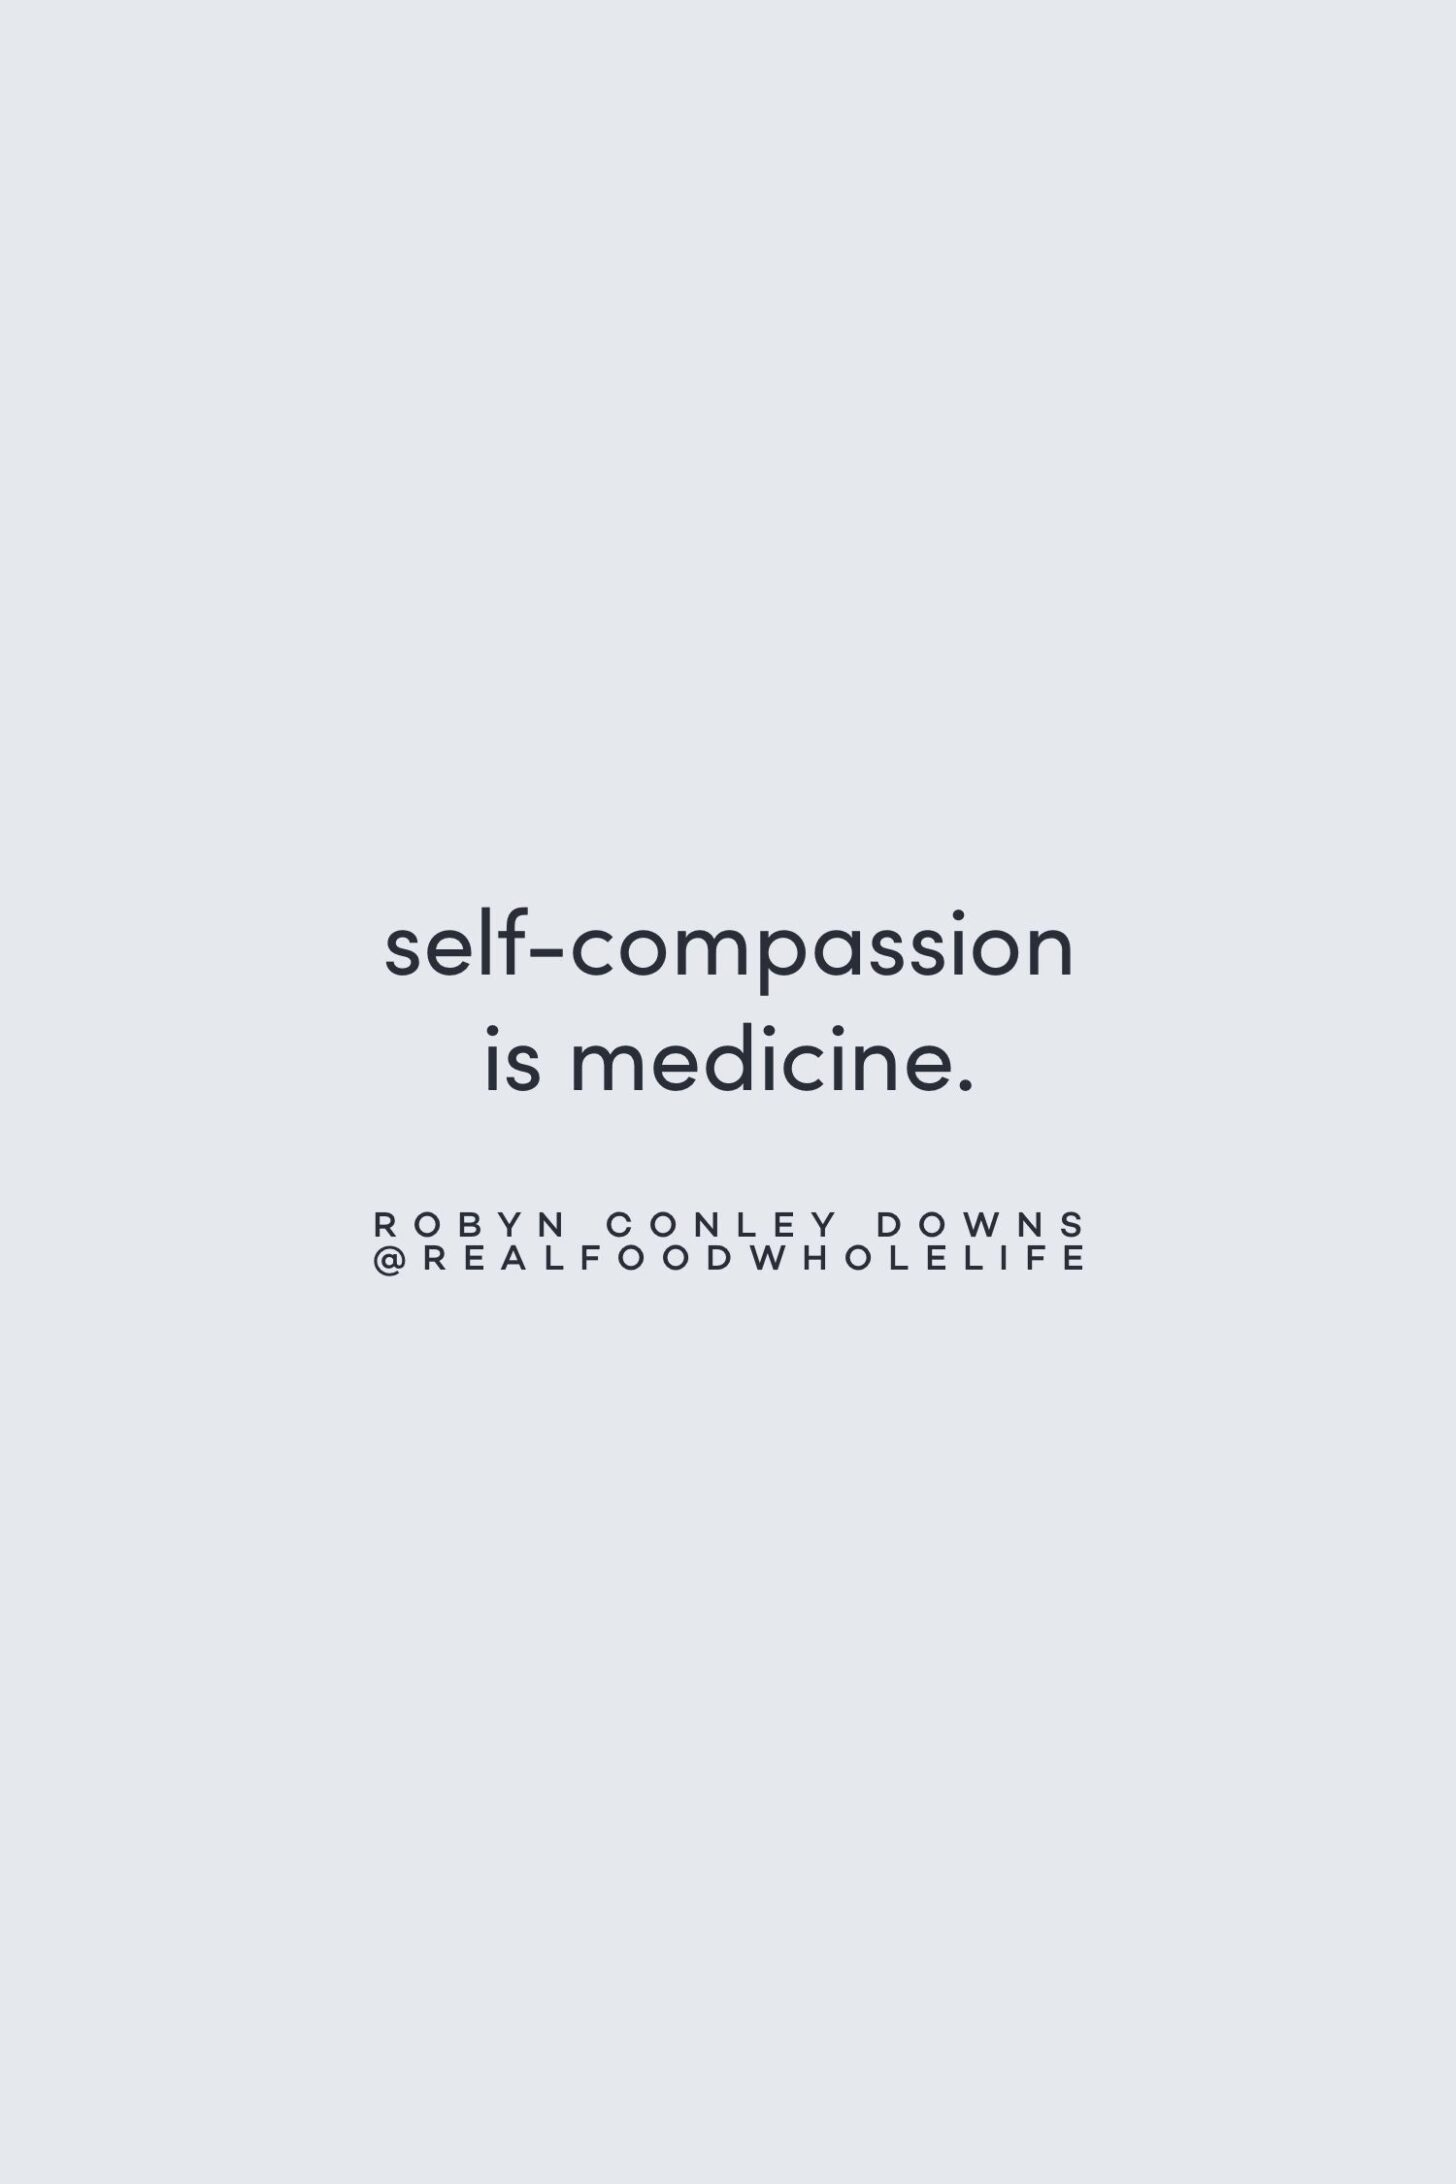 Quote on self-compassion as medicine by Robyn Conley Downs on the Feel Good Effect Podcast #realfoodwholelife #feelgoodeffect #motivationalquote #positivityquote #inspirationalquote #selfcompassionquote #wellbeingquote #selfcarequote